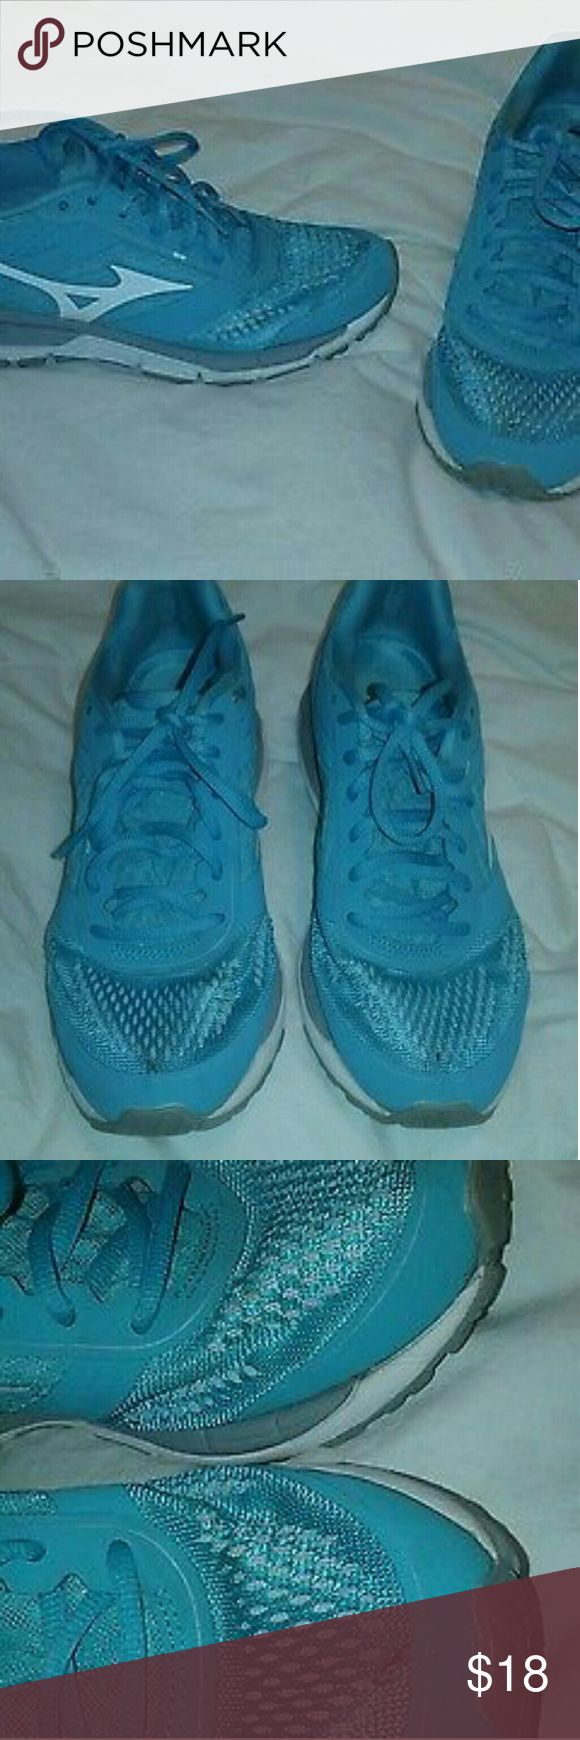 Mizuno Sneakers Aqua Blue Athletic Womens 8.5 Mizuno Sneakers Aqua Blue Athletic Womens Shoes Size 8.5  Pre-owned pair, in fair condition.  Some wear and marks pictured, but still plenty of life left.  Great color! Mizuno Shoes Athletic Shoes